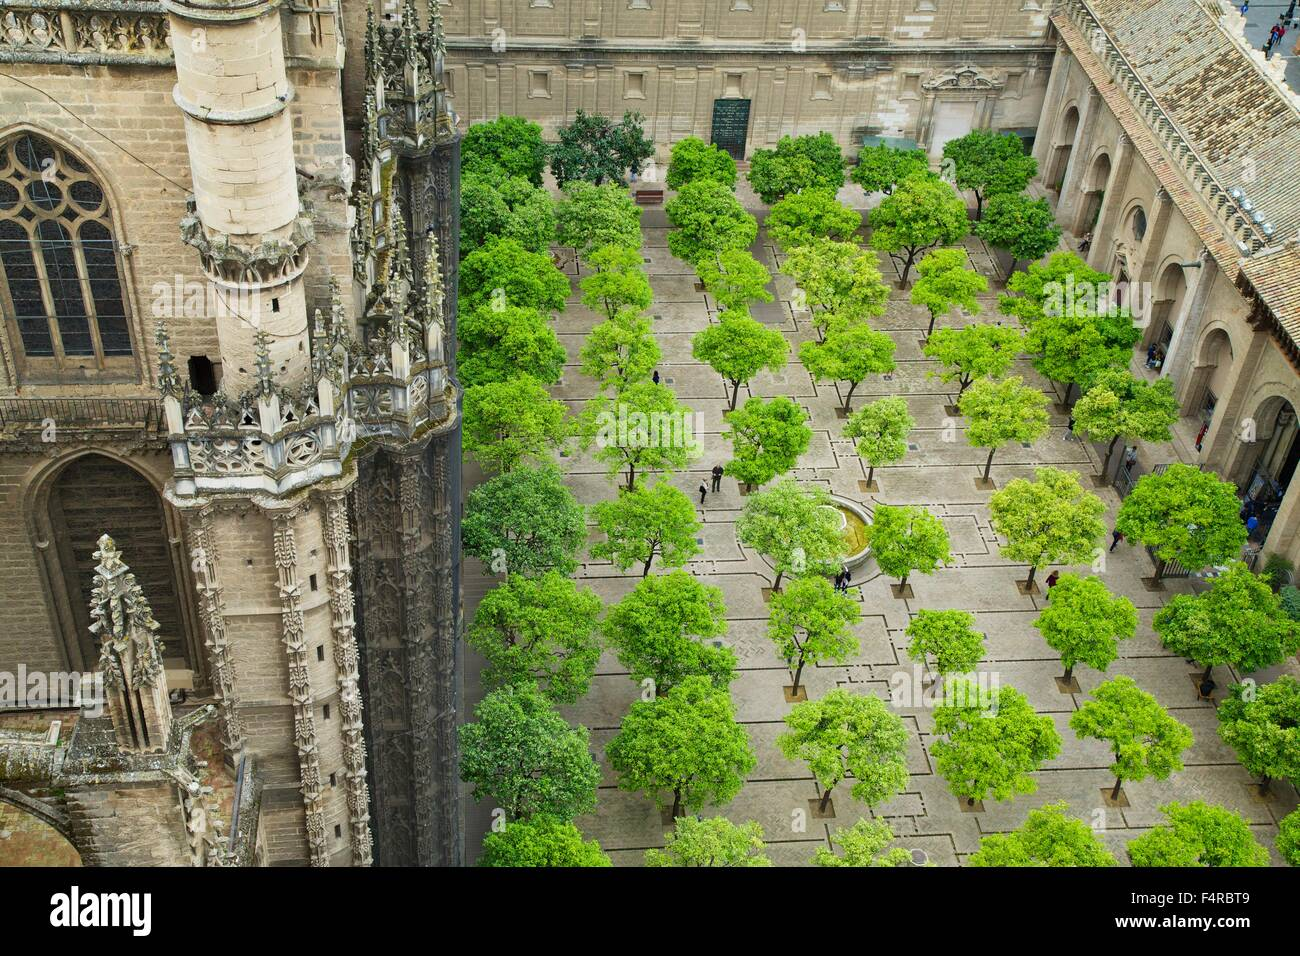 Patio de los Naranjos, Patio of the Oranges, from the Giralda bell tower, Seville Cathedral,  Andalucia, Spain, - Stock Image